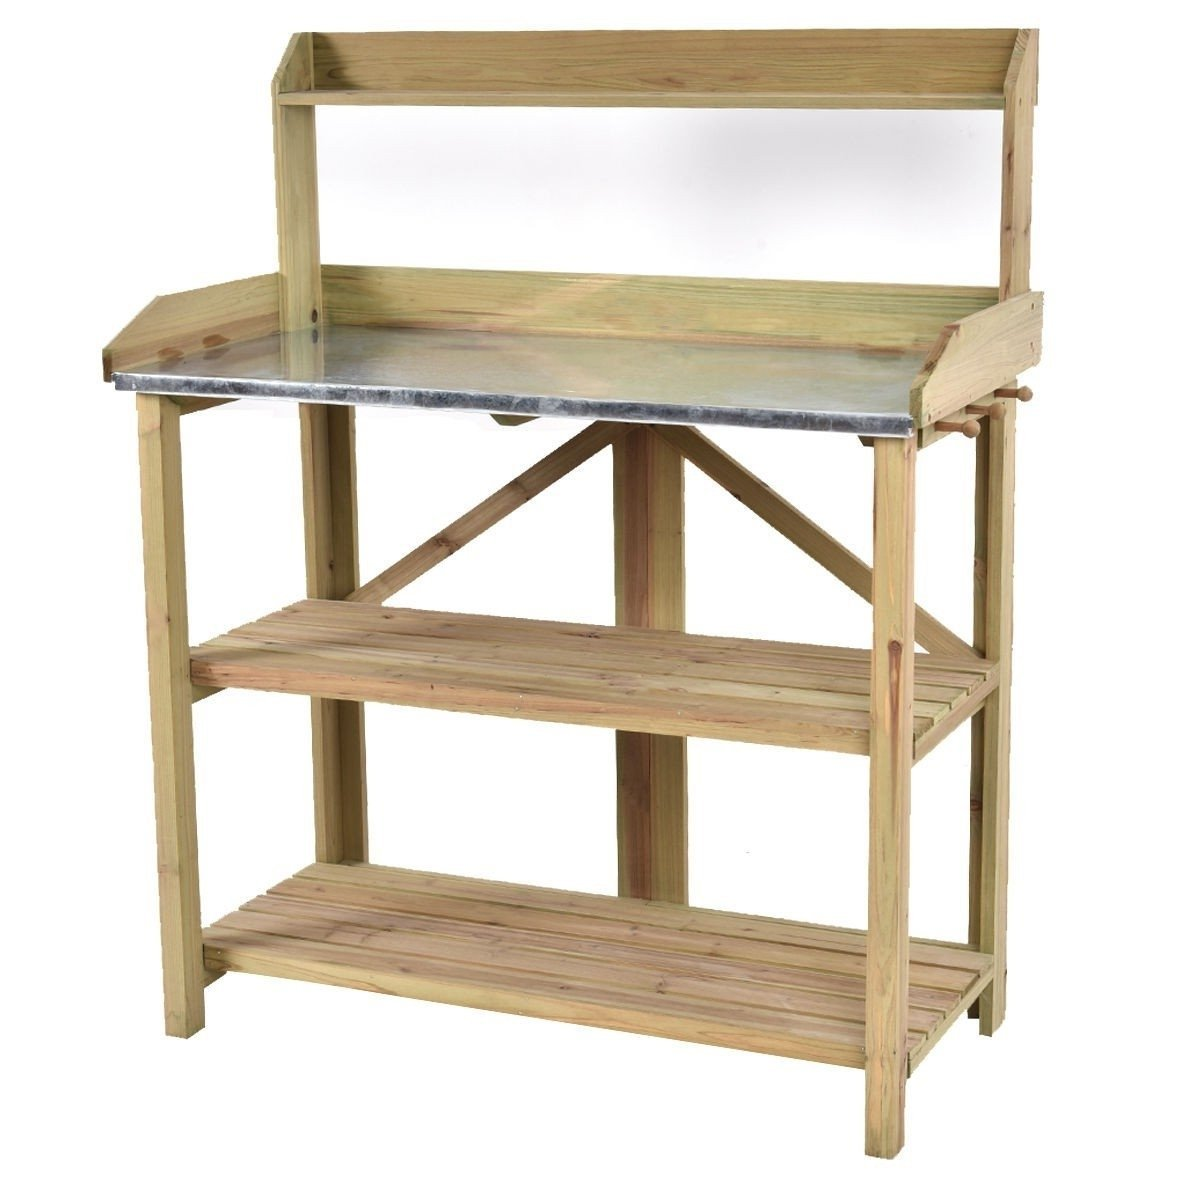 Outdoor Garden Workstation Potting Bench with Metal Top.